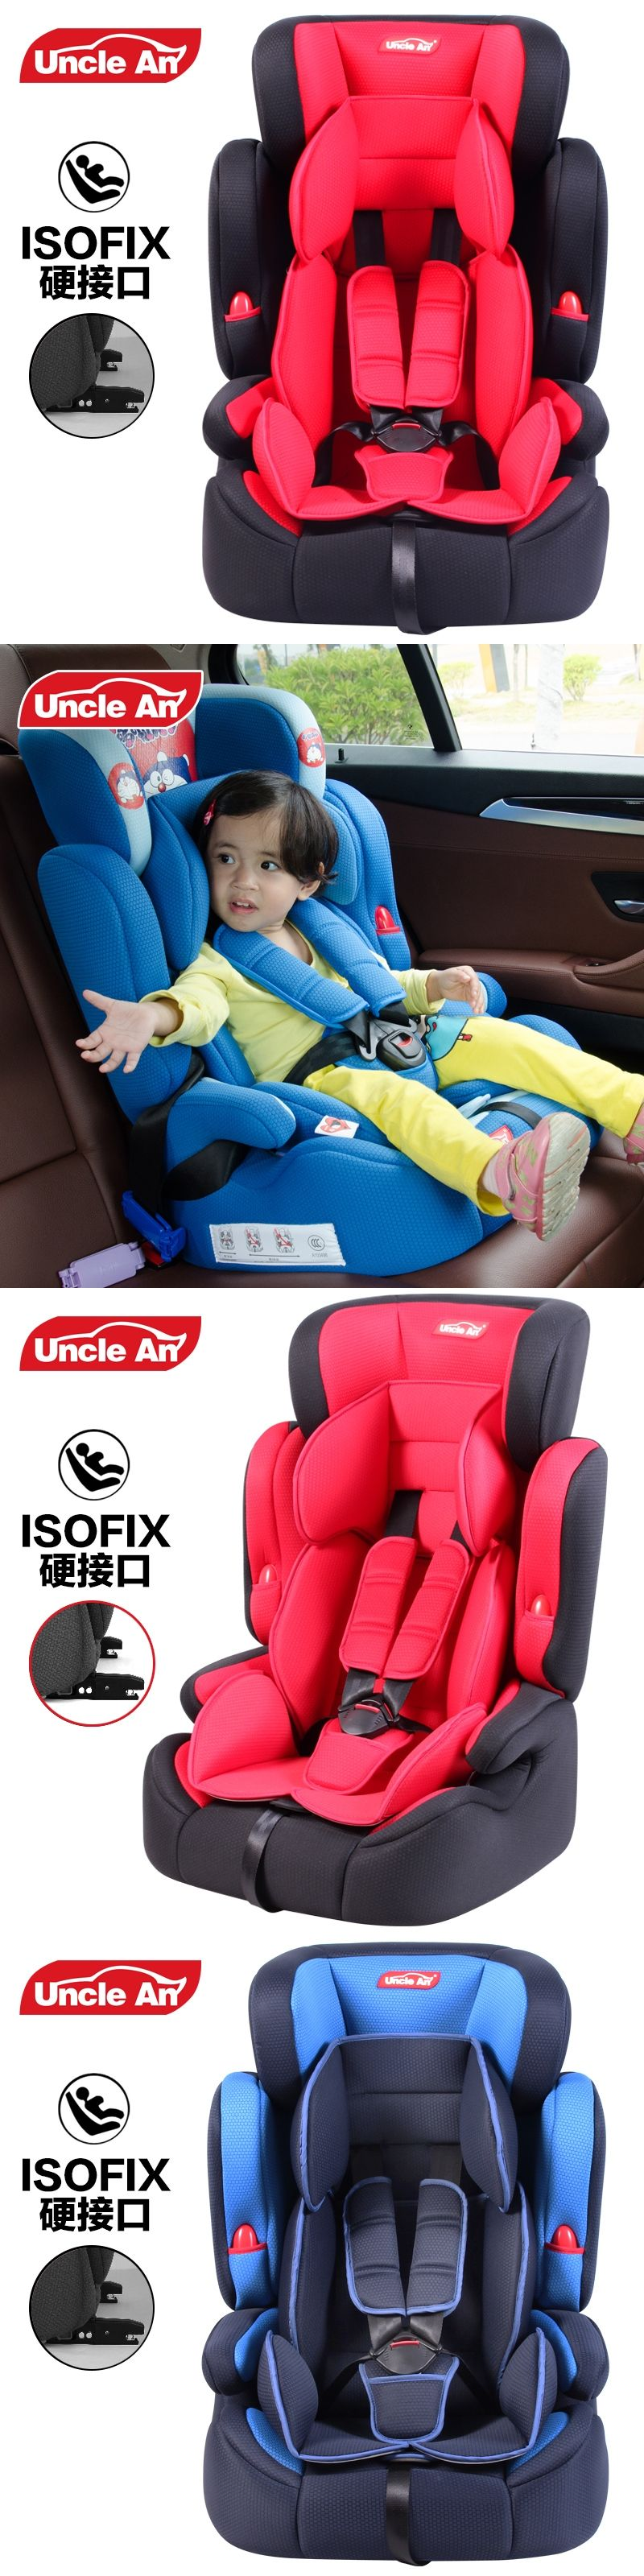 Child Safety Seat Isofix 9 months -12 Baby Baby Car Seat 3c ...